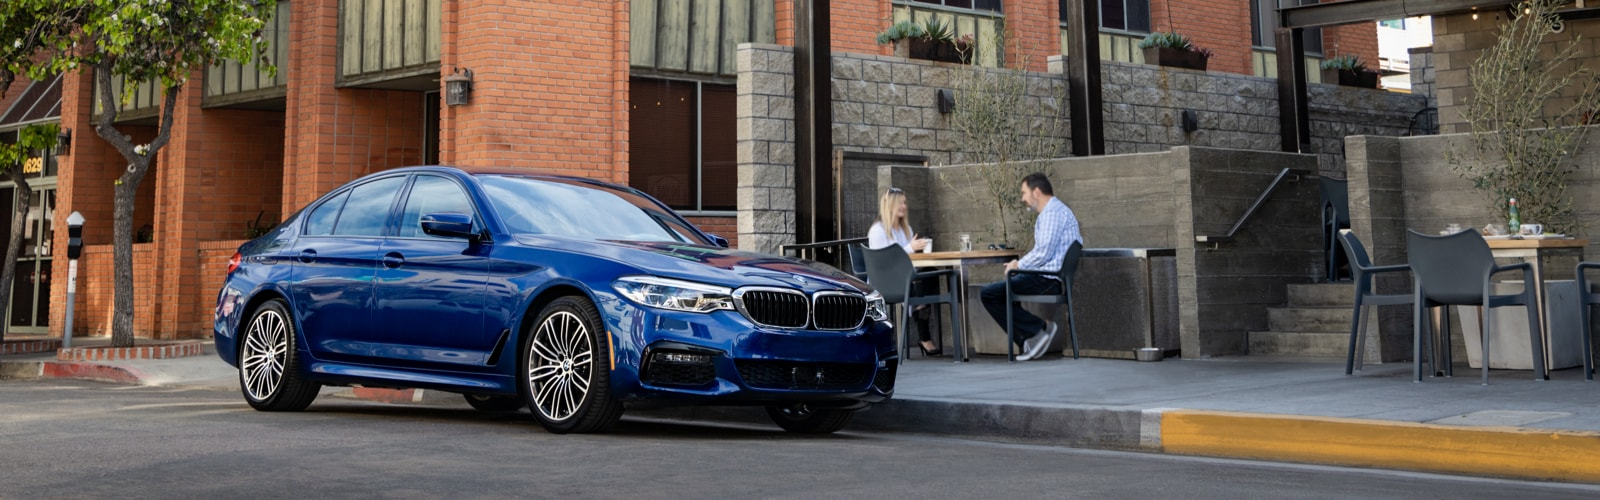 BMW 5 series lease deals Image